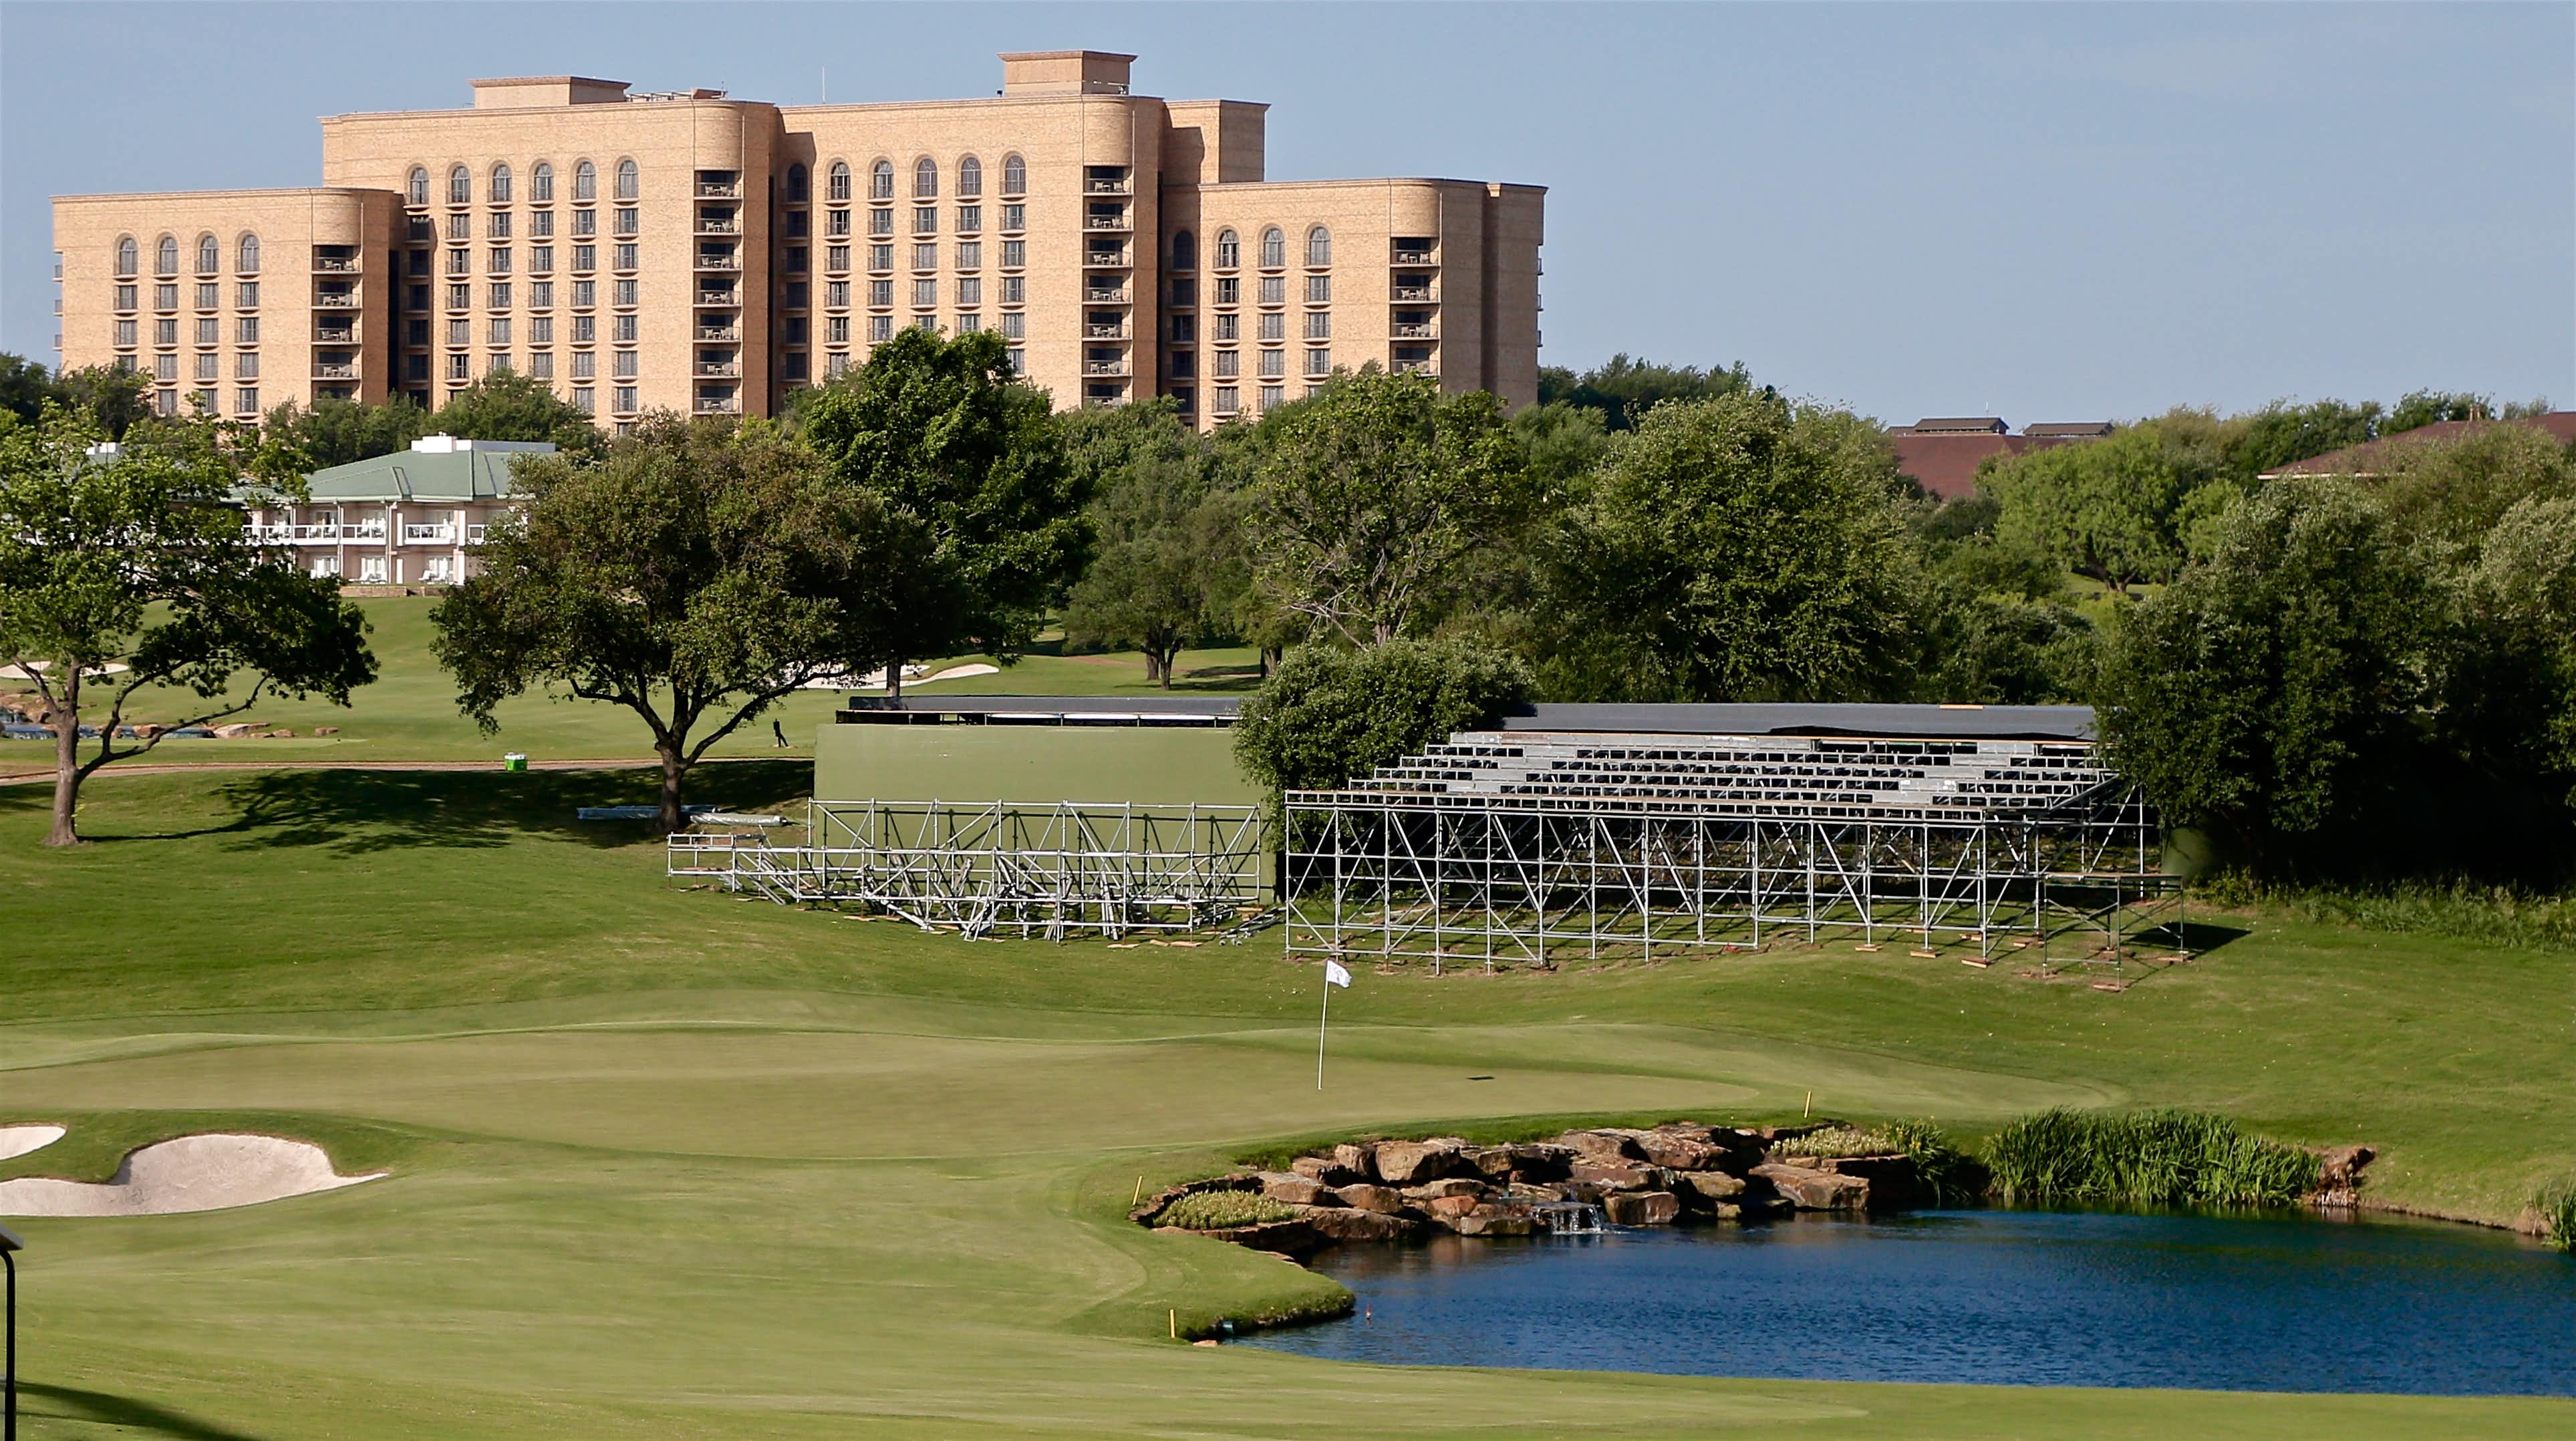 Las Colinas' Four Seasons hotel bought by New York developer